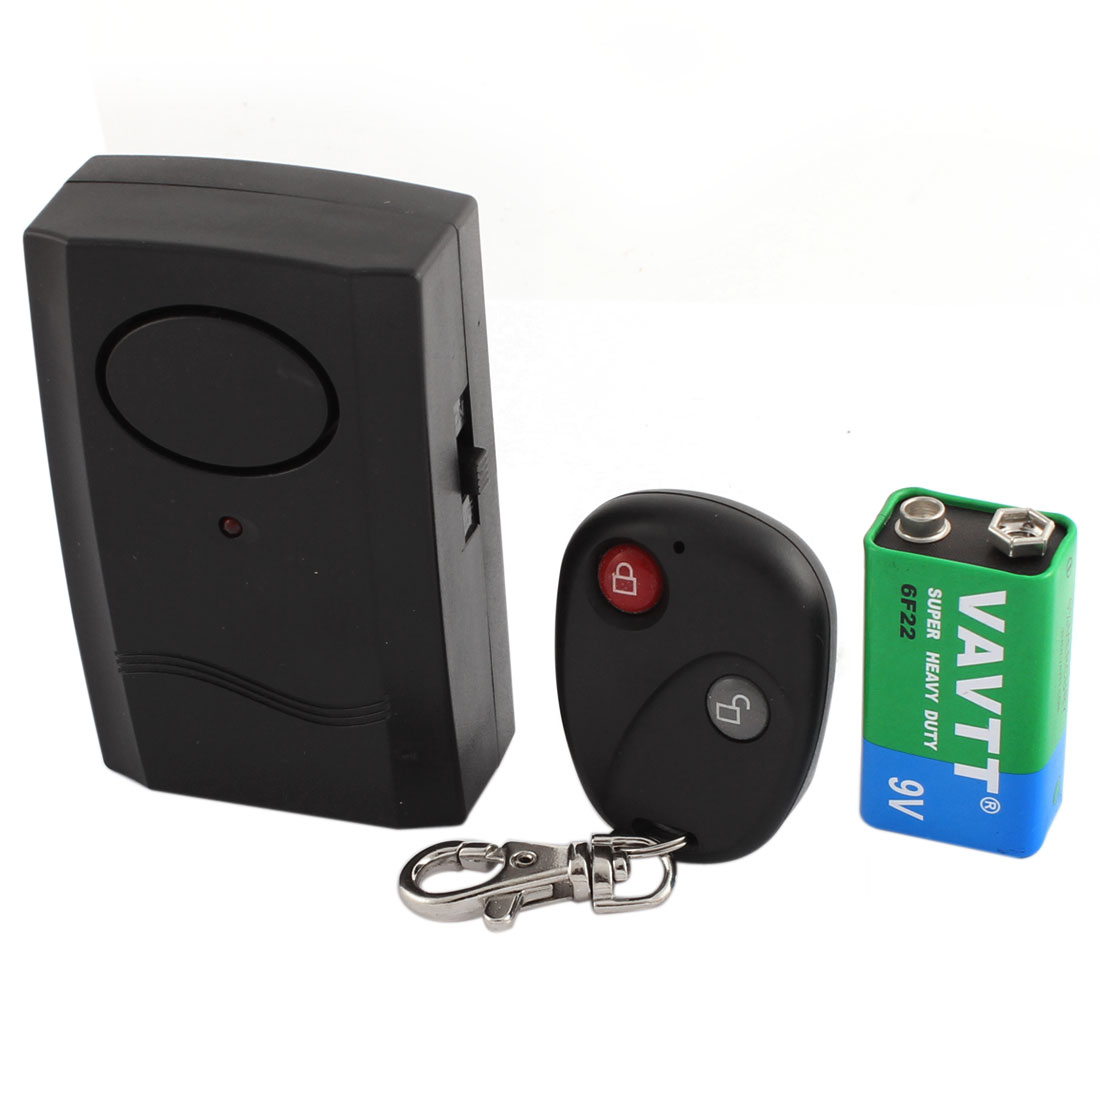 Motorbike Scooter Wireless Remote Control Anti-theft Security Alarm w 9V Battery